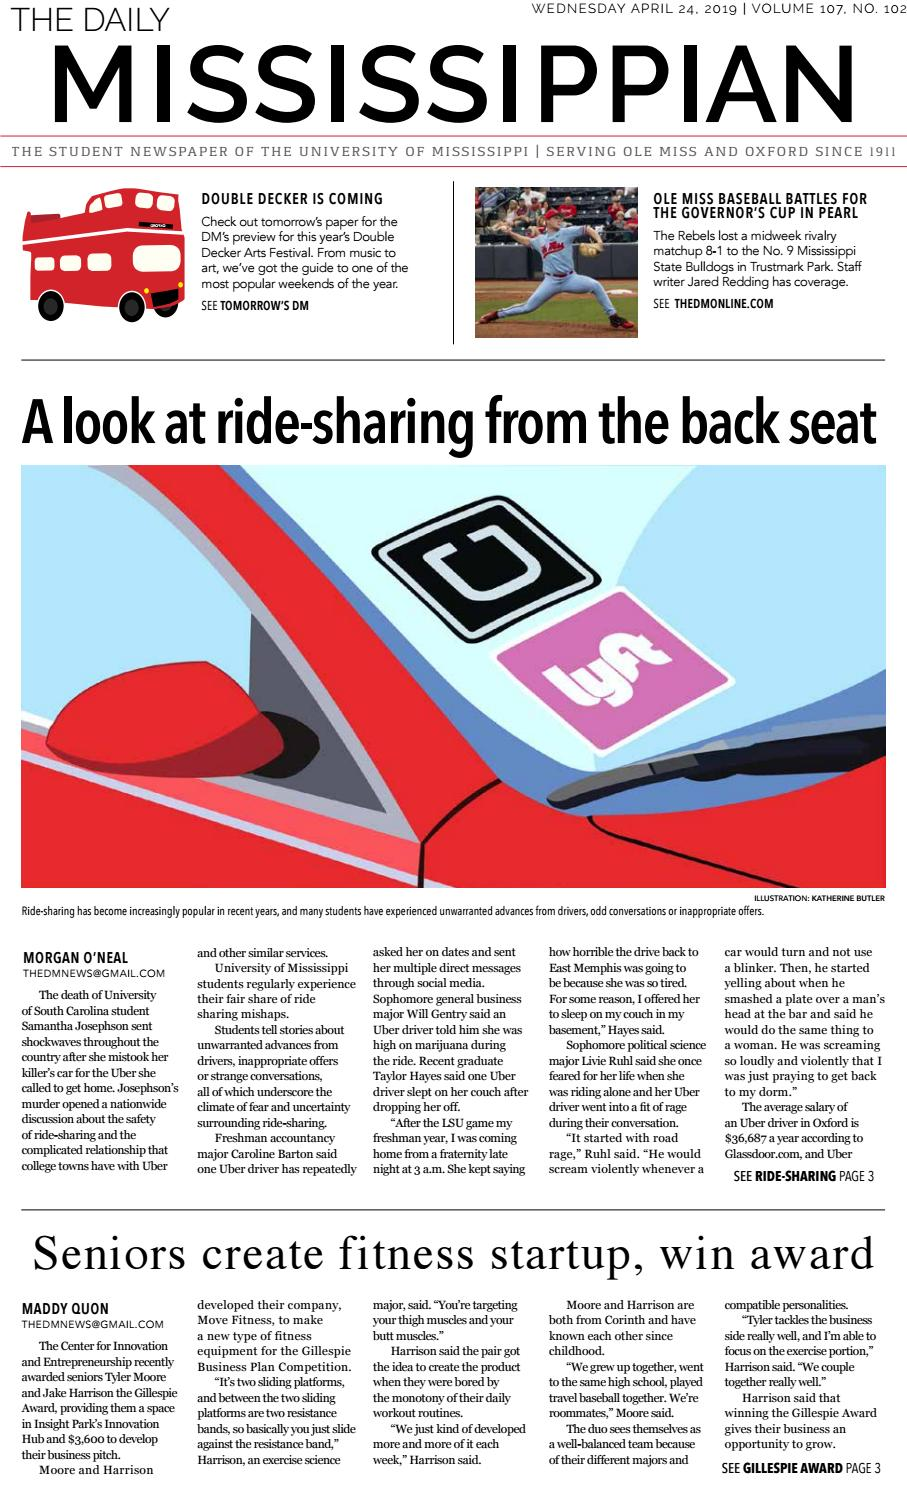 The Daily Mississippian - April 24, 2019 by The Daily